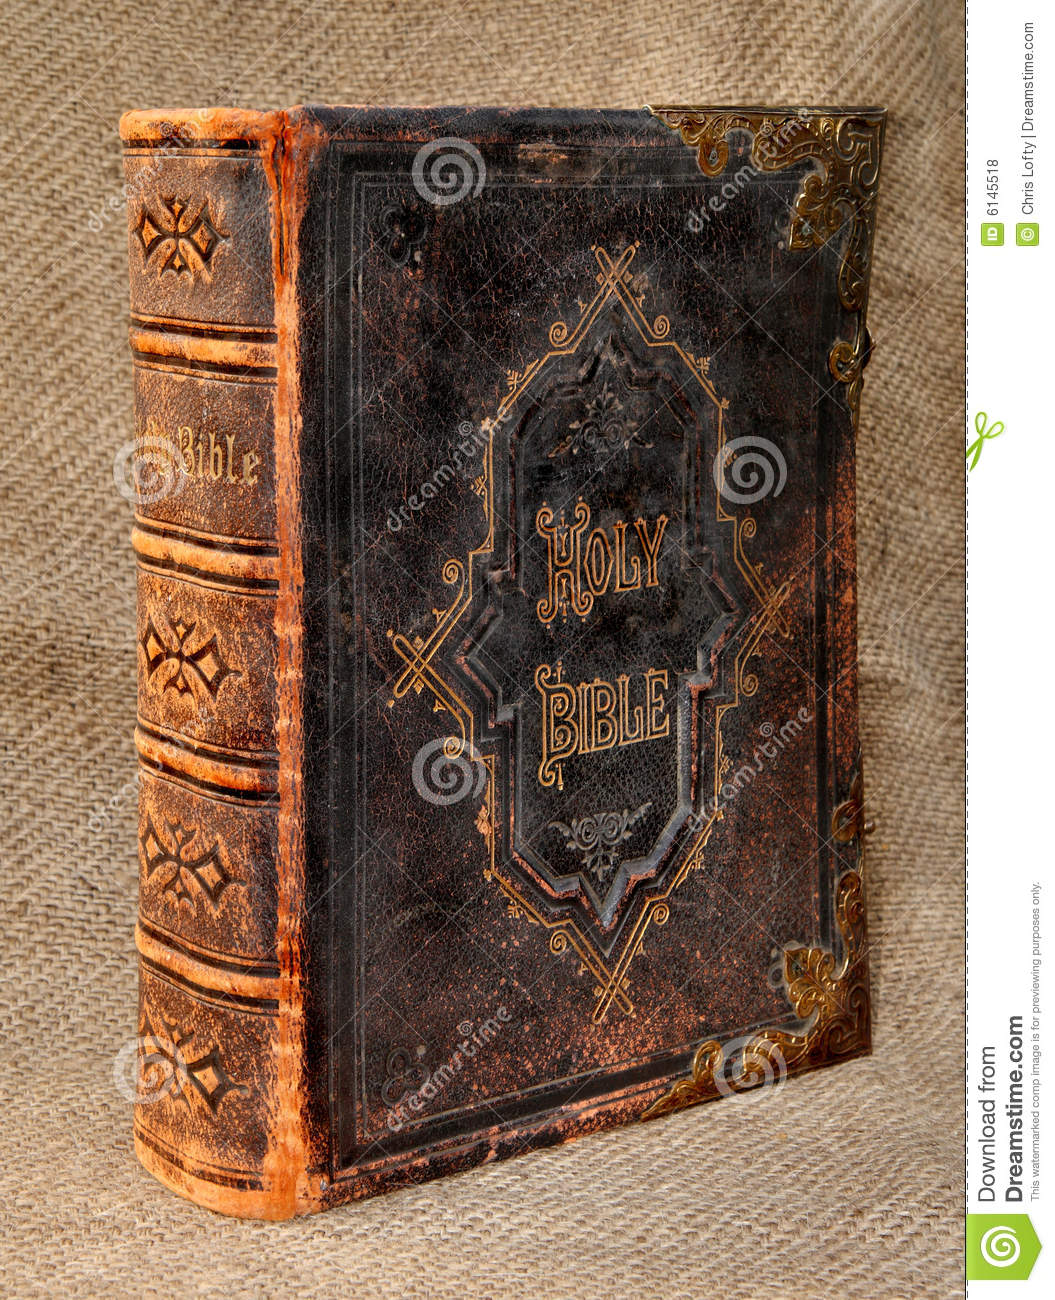 Vintage Leather Look Jeremiah Verse Bible Book Cover Large: Ancient Leather Bound Holy Bible Royalty Free Stock Photos